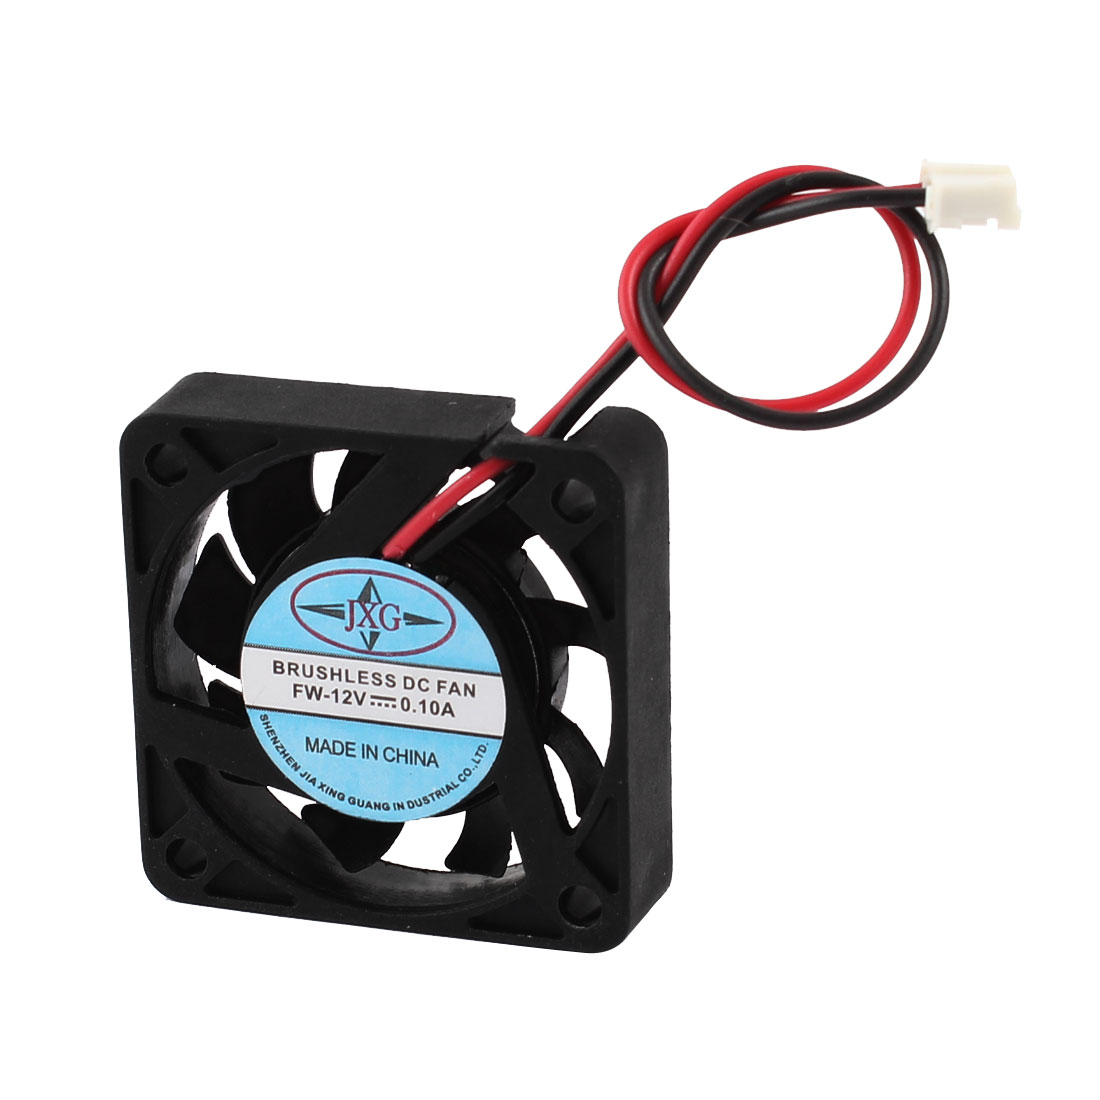 DC 12V 0.10A 2 Terminals Plastic Brushless 9 Flabellums Cooler CPU Fan Black 40mm x 40mm x 10mm